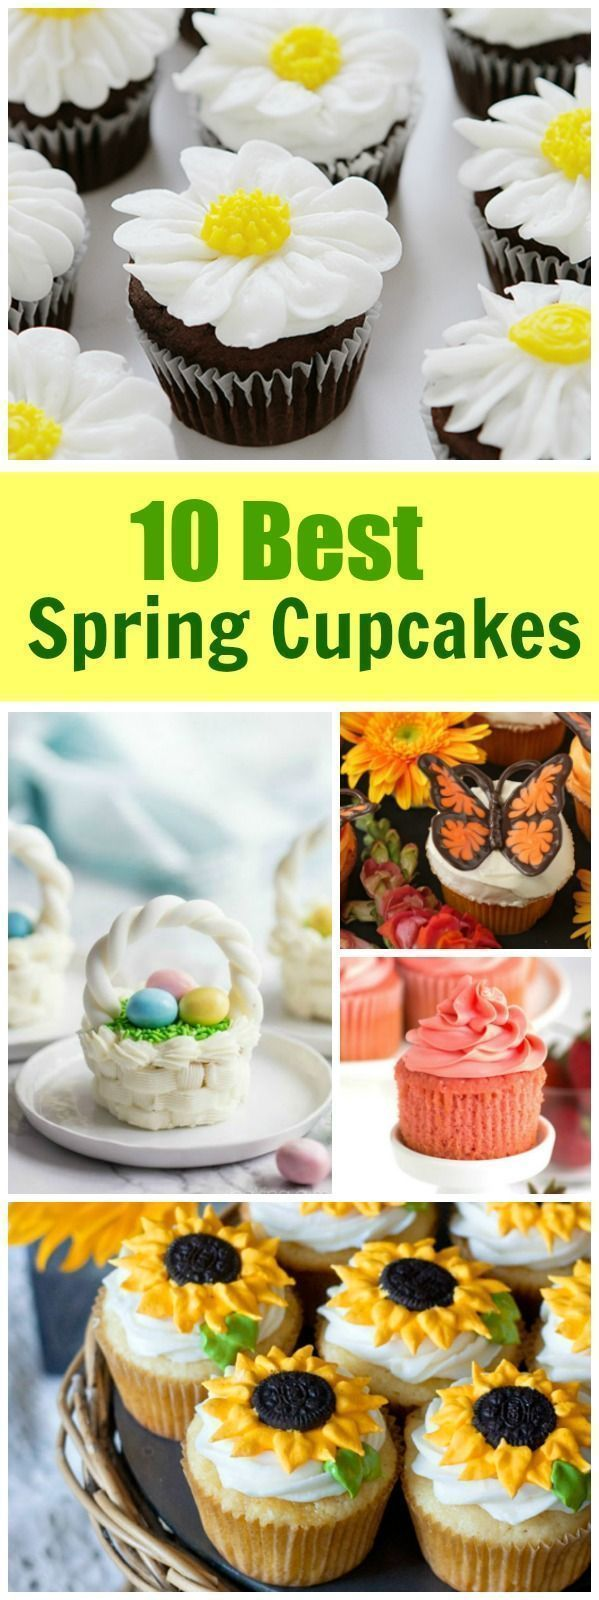 10 Best Spring Cupcake Recipes: Daisy Cupcakes, Lemon Sunflower Cupcakes, Chocolate Butterfly Cupcakes, Easter Basket Cupcakes and more! #sunflowercupcakes 10 Best Spring Cupcake Recipes: Daisy Cupcakes, Lemon Sunflower Cupcakes, Chocolate Butterfly Cupcakes, Easter Basket Cupcakes and more! #sunflowercupcakes 10 Best Spring Cupcake Recipes: Daisy Cupcakes, Lemon Sunflower Cupcakes, Chocolate Butterfly Cupcakes, Easter Basket Cupcakes and more! #sunflowercupcakes 10 Best Spring Cupcake Recipes: #sunflowercupcakes